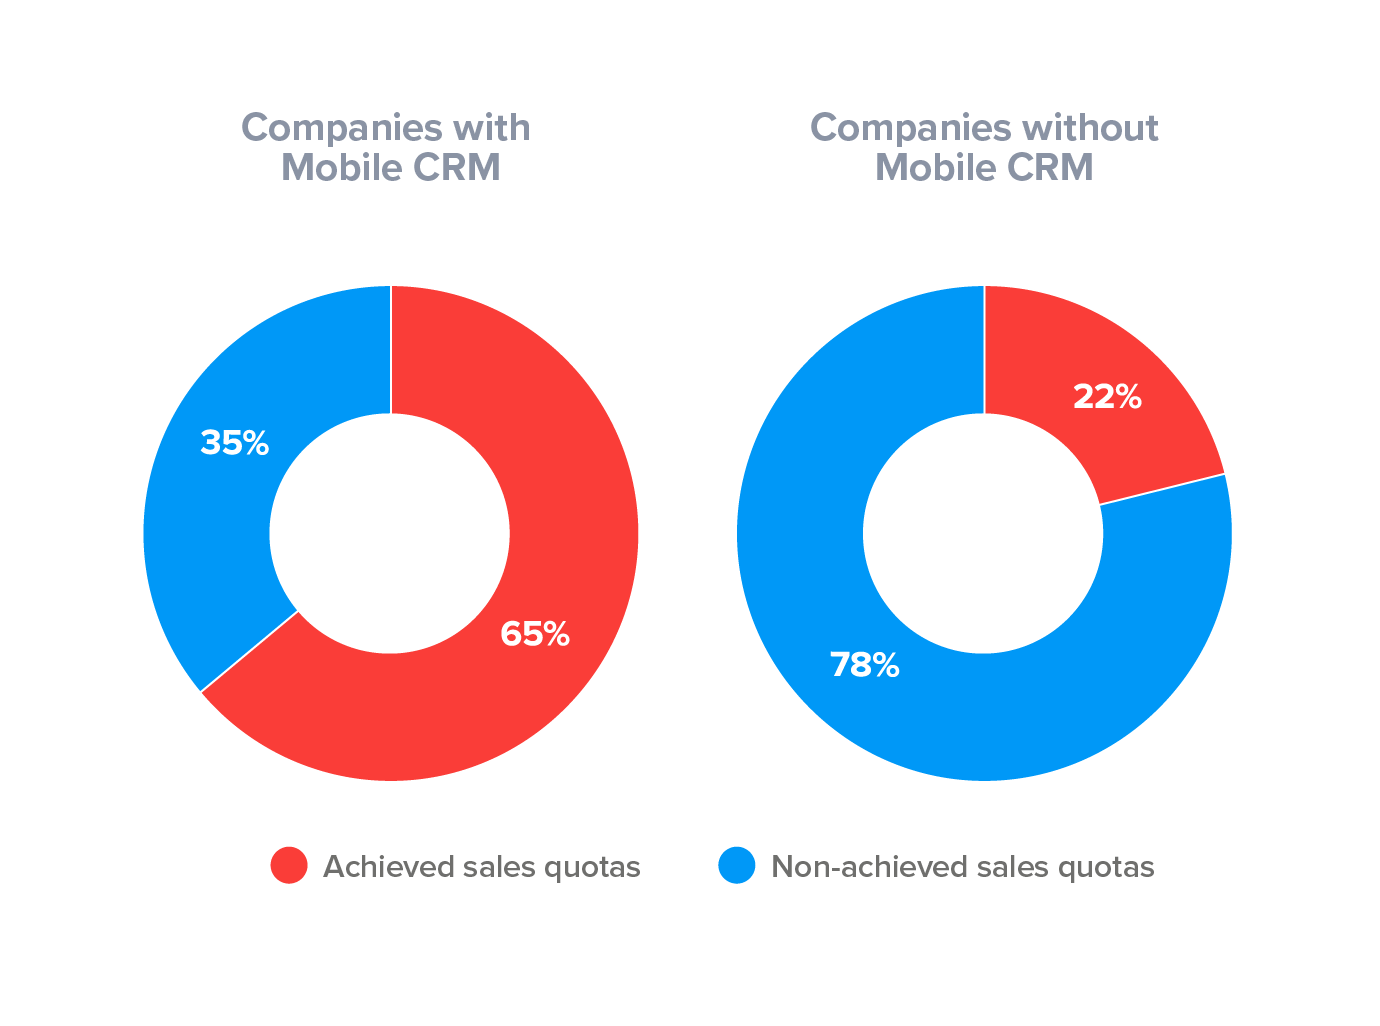 Companies with Mobile CRM achieve sales quotas